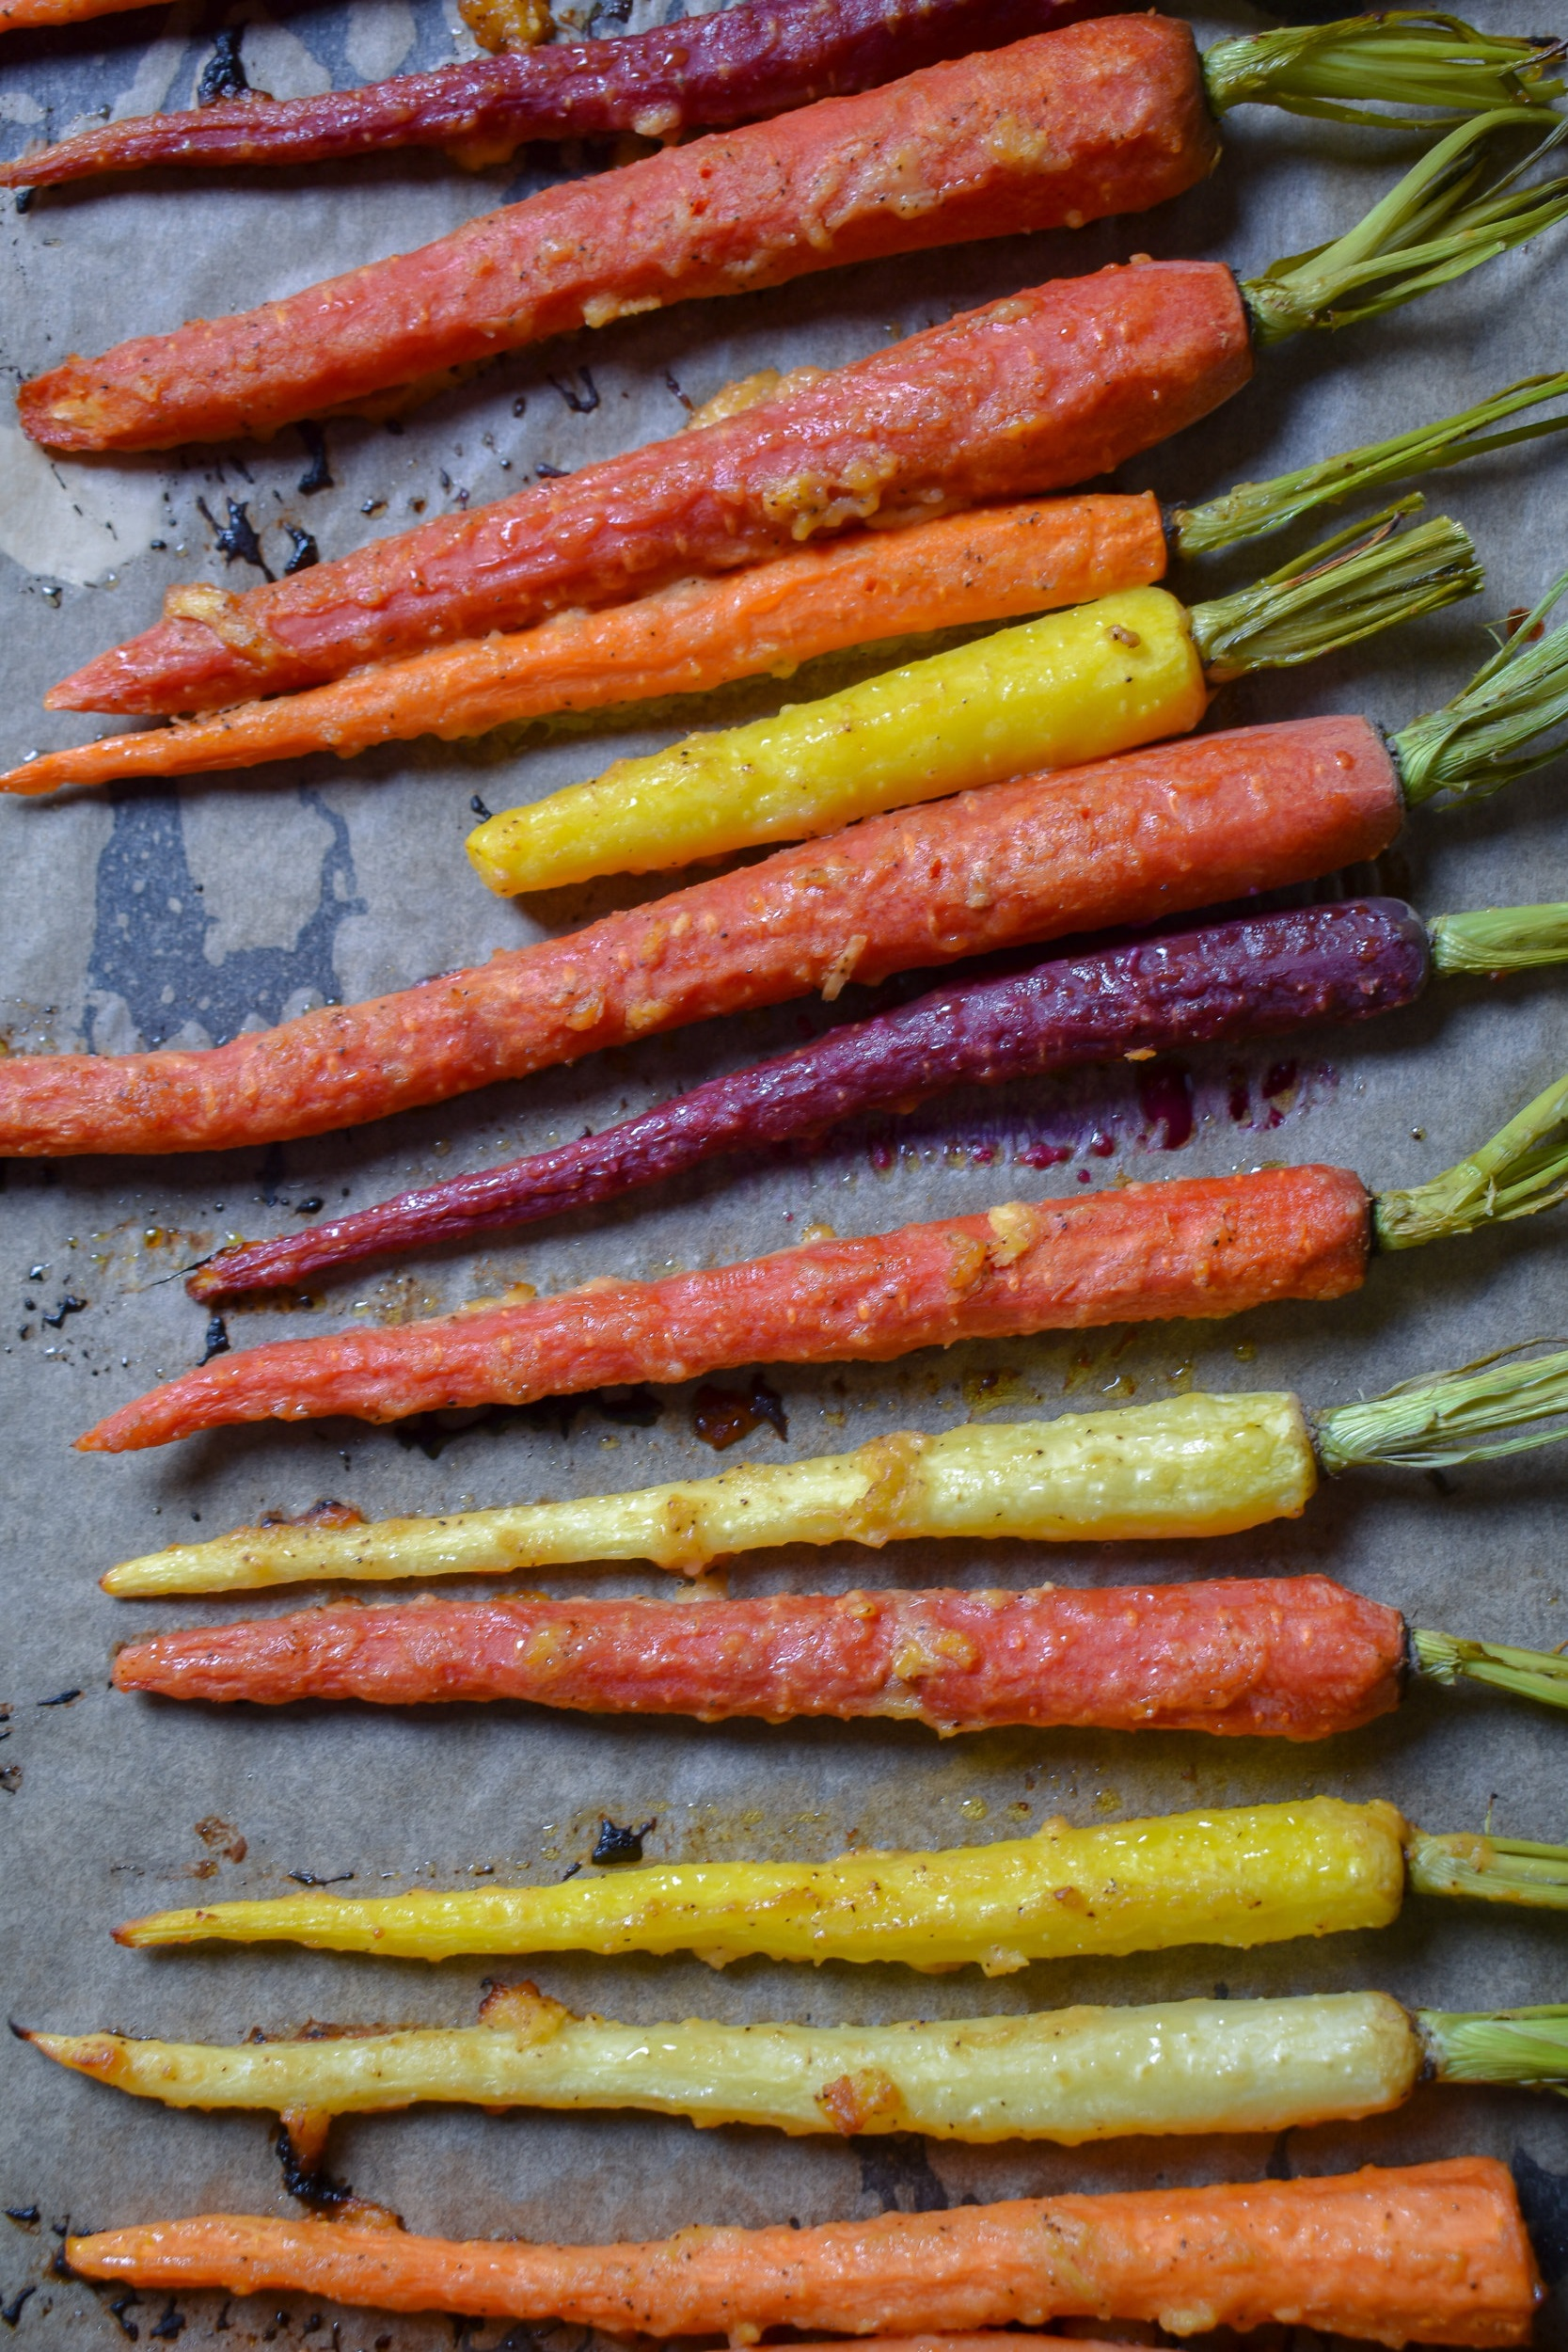 2. Place the carrots into the oven and bake for 20-30 minutes. It really depends on how crunchy you like your carrots and how thick they are. A good test of if they are done is pull them out, push a fork into them. It should push through with some light tension.